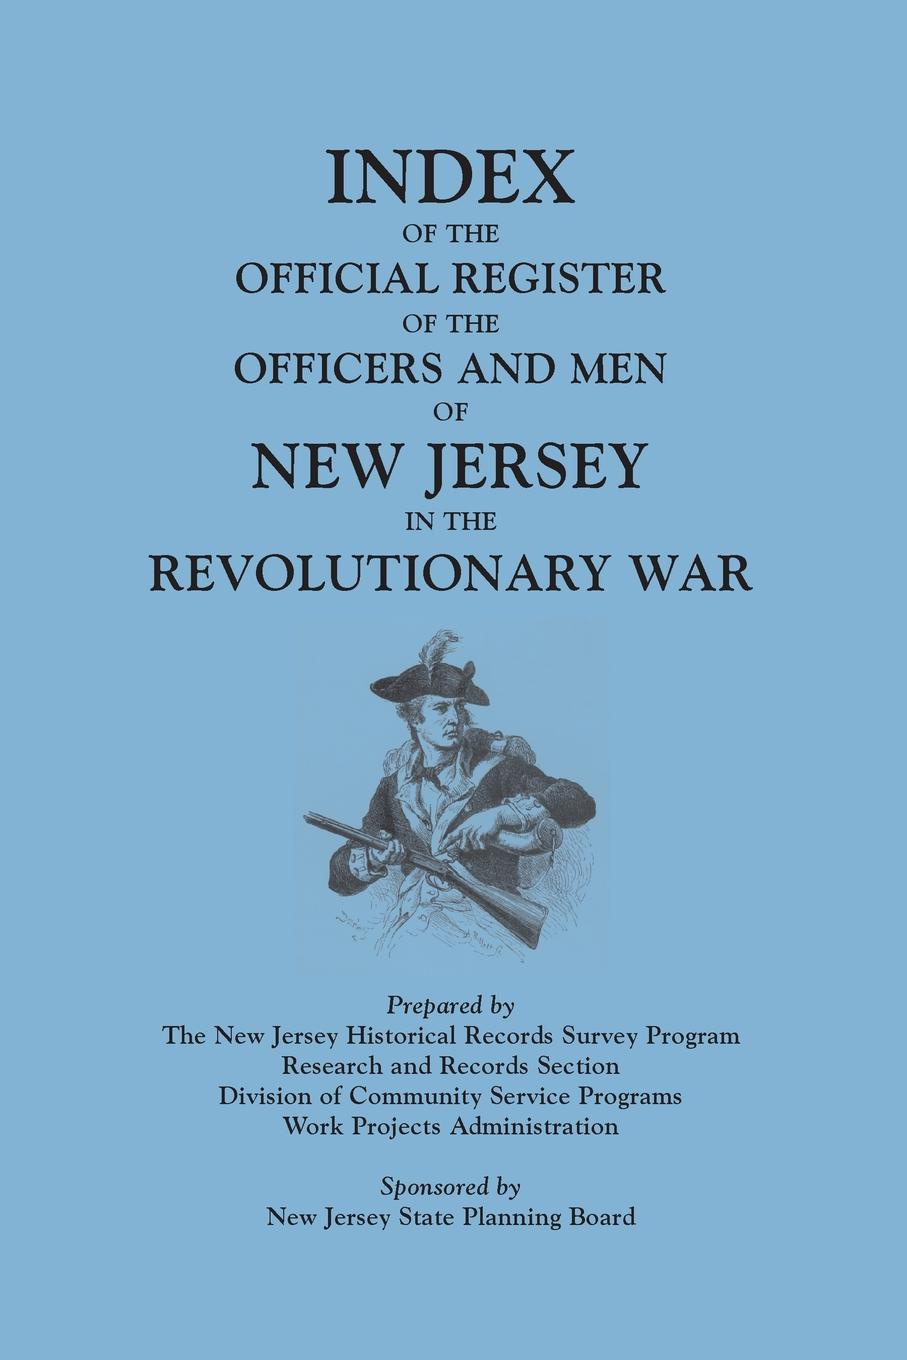 New Jersey Historical Records Survey Sta, New Jersey State Planning Board, New Jersey Historical Reco Index of the Official Register of the Officers and Men of New Jersey in the Revolutionary War, by William S. Stryker. Prepared by the New Jersey Histo the new jersey we love